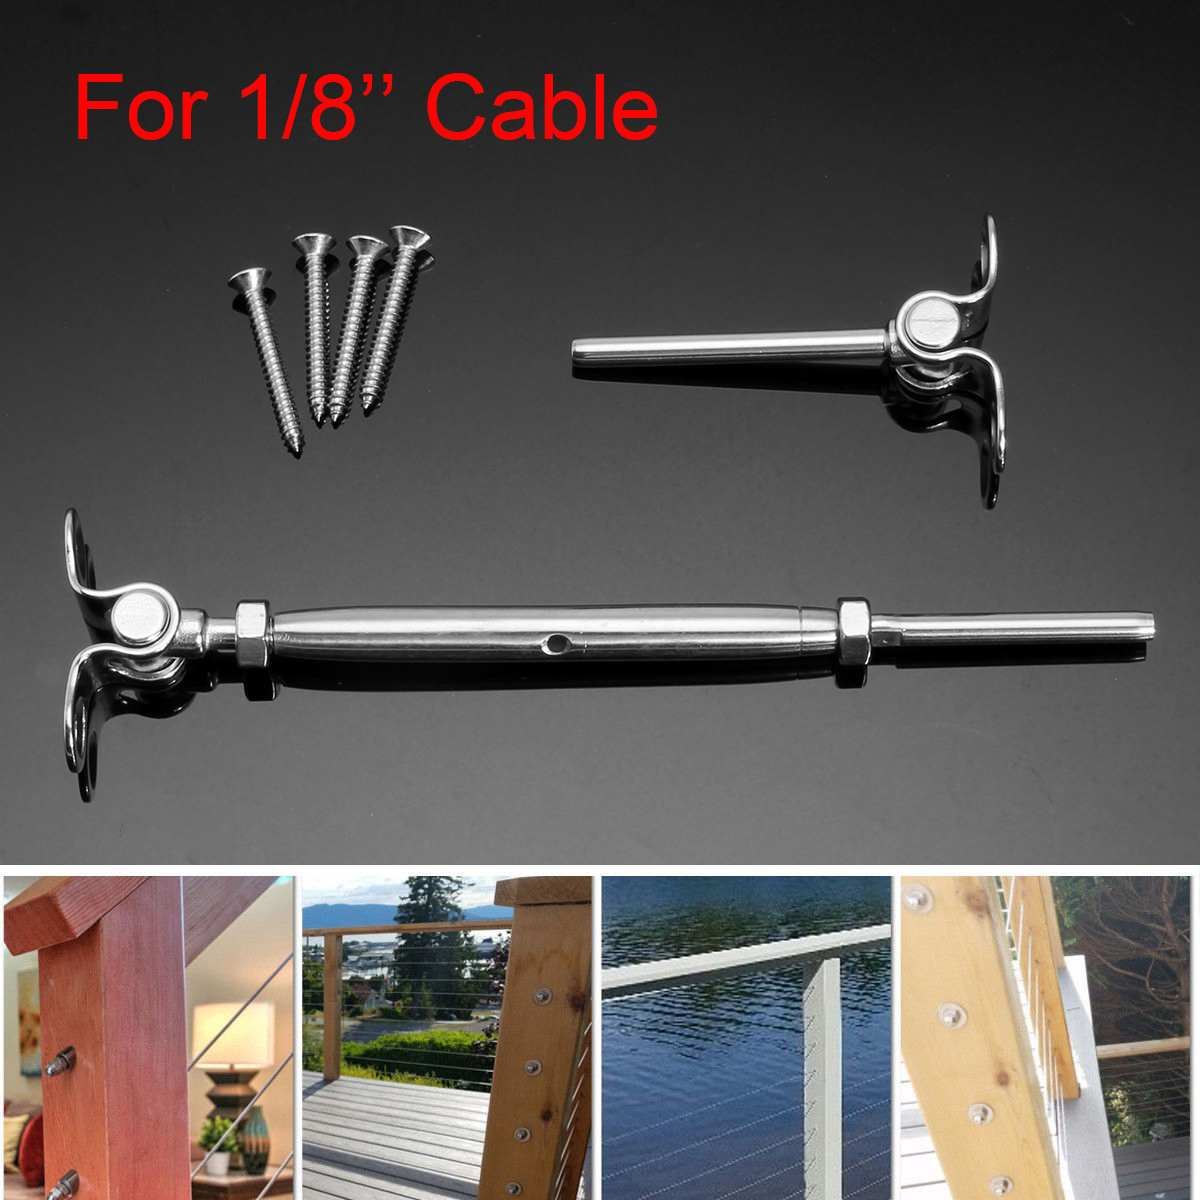 6Pcs/Set Deck Toggle T316 Stainless Steel Tensioner Set For 1/8'' Cable Railing Construction Tool Cable Railing Tensioner Kit